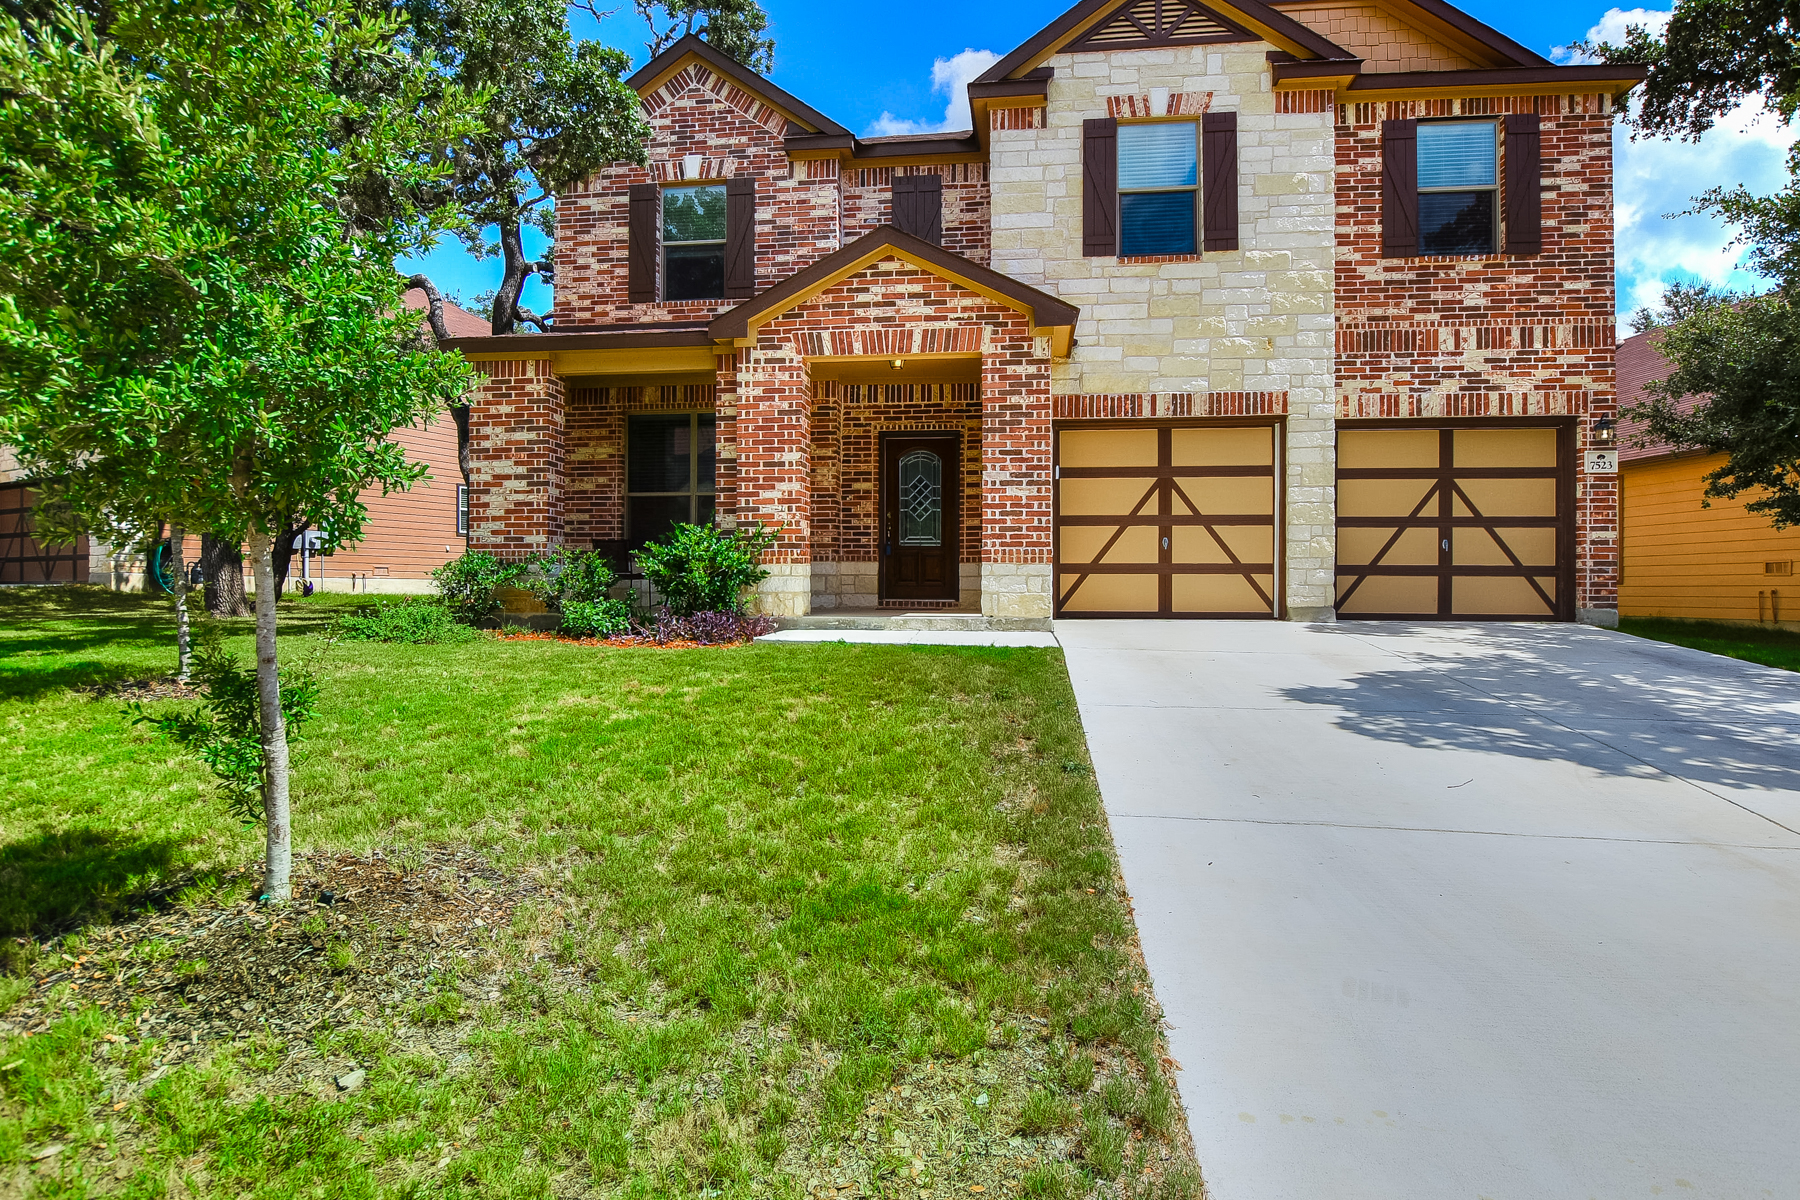 Single Family Home for Rent at Spacious Rental in Cobblestone 7523 Daniel Krug San Antonio, Texas 78253 United States